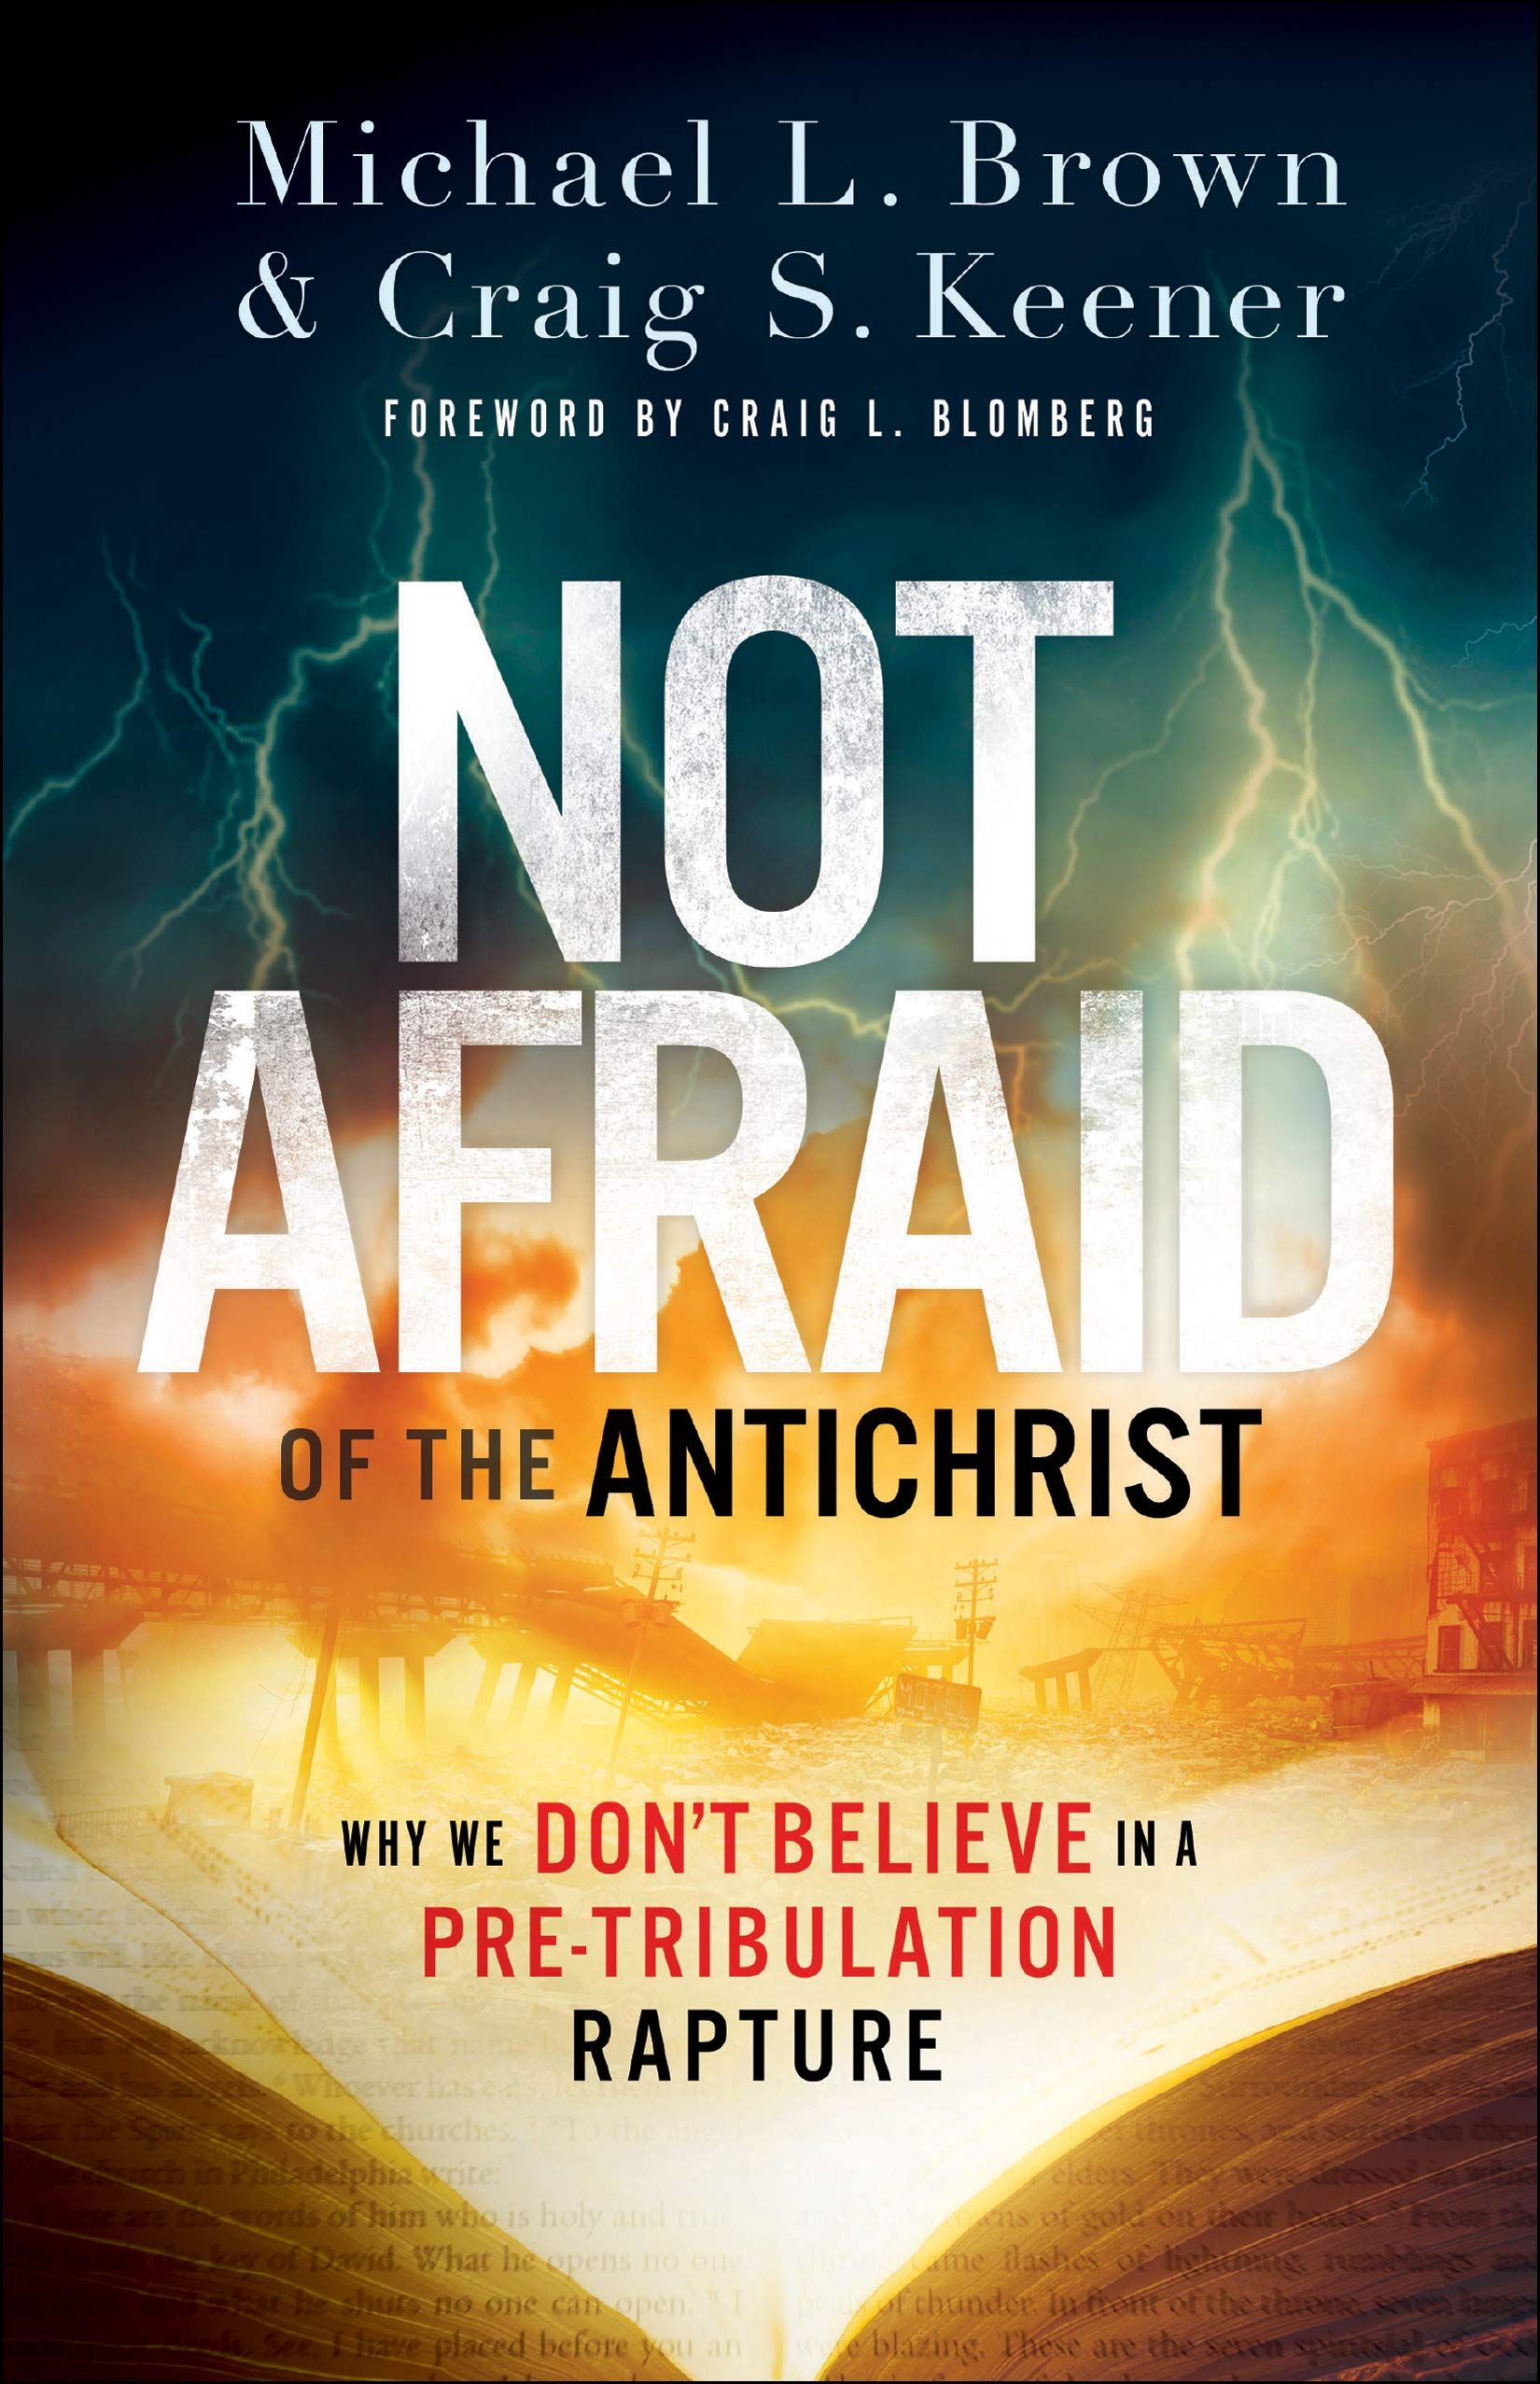 Not Afraid of the Antichrist: Why We Don't Believe in a Pre